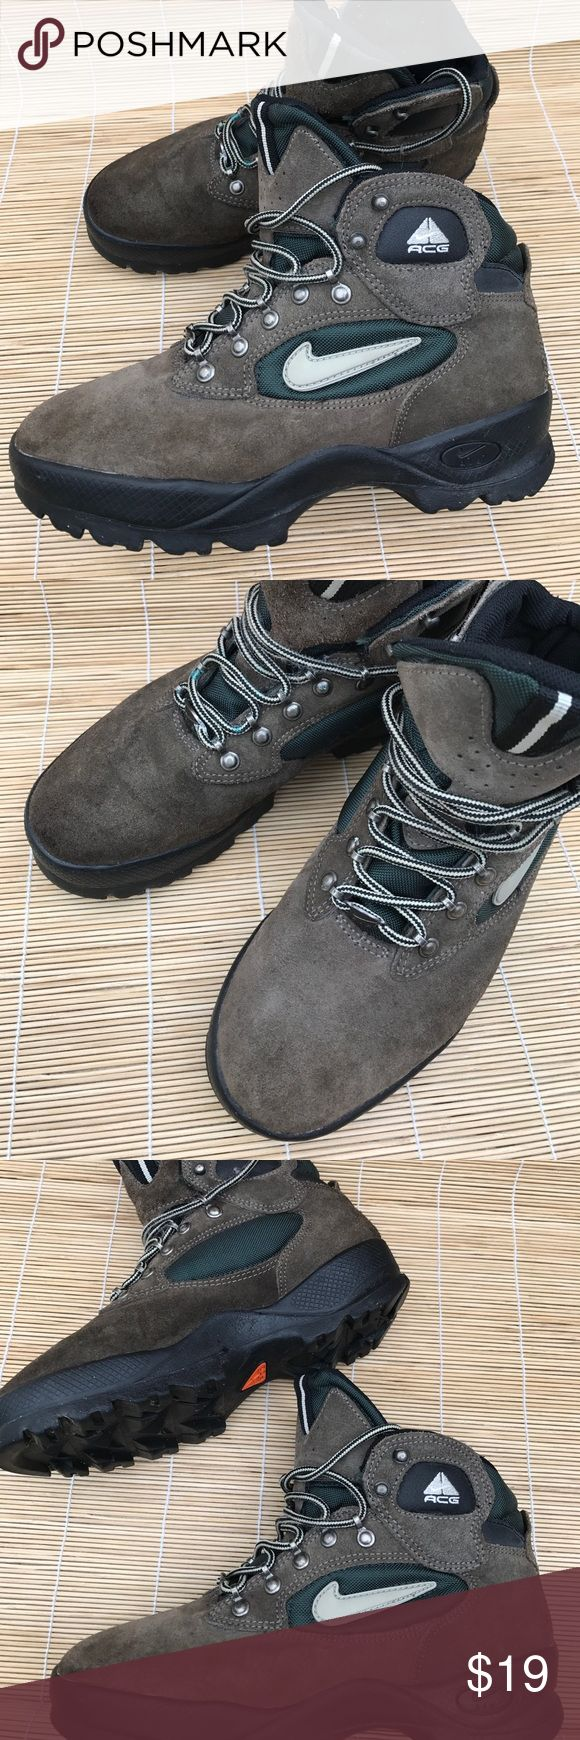 Nike Hiking Boots size 8 These are woman's Hiking Boots size 8. (I am an 8 and they fit me). They have been worn and are still in pretty good shape - heel good, tread good, just slight evidence of wear on the suede upper toe area (and Im being picky). Nike Shoes Lace Up Boots